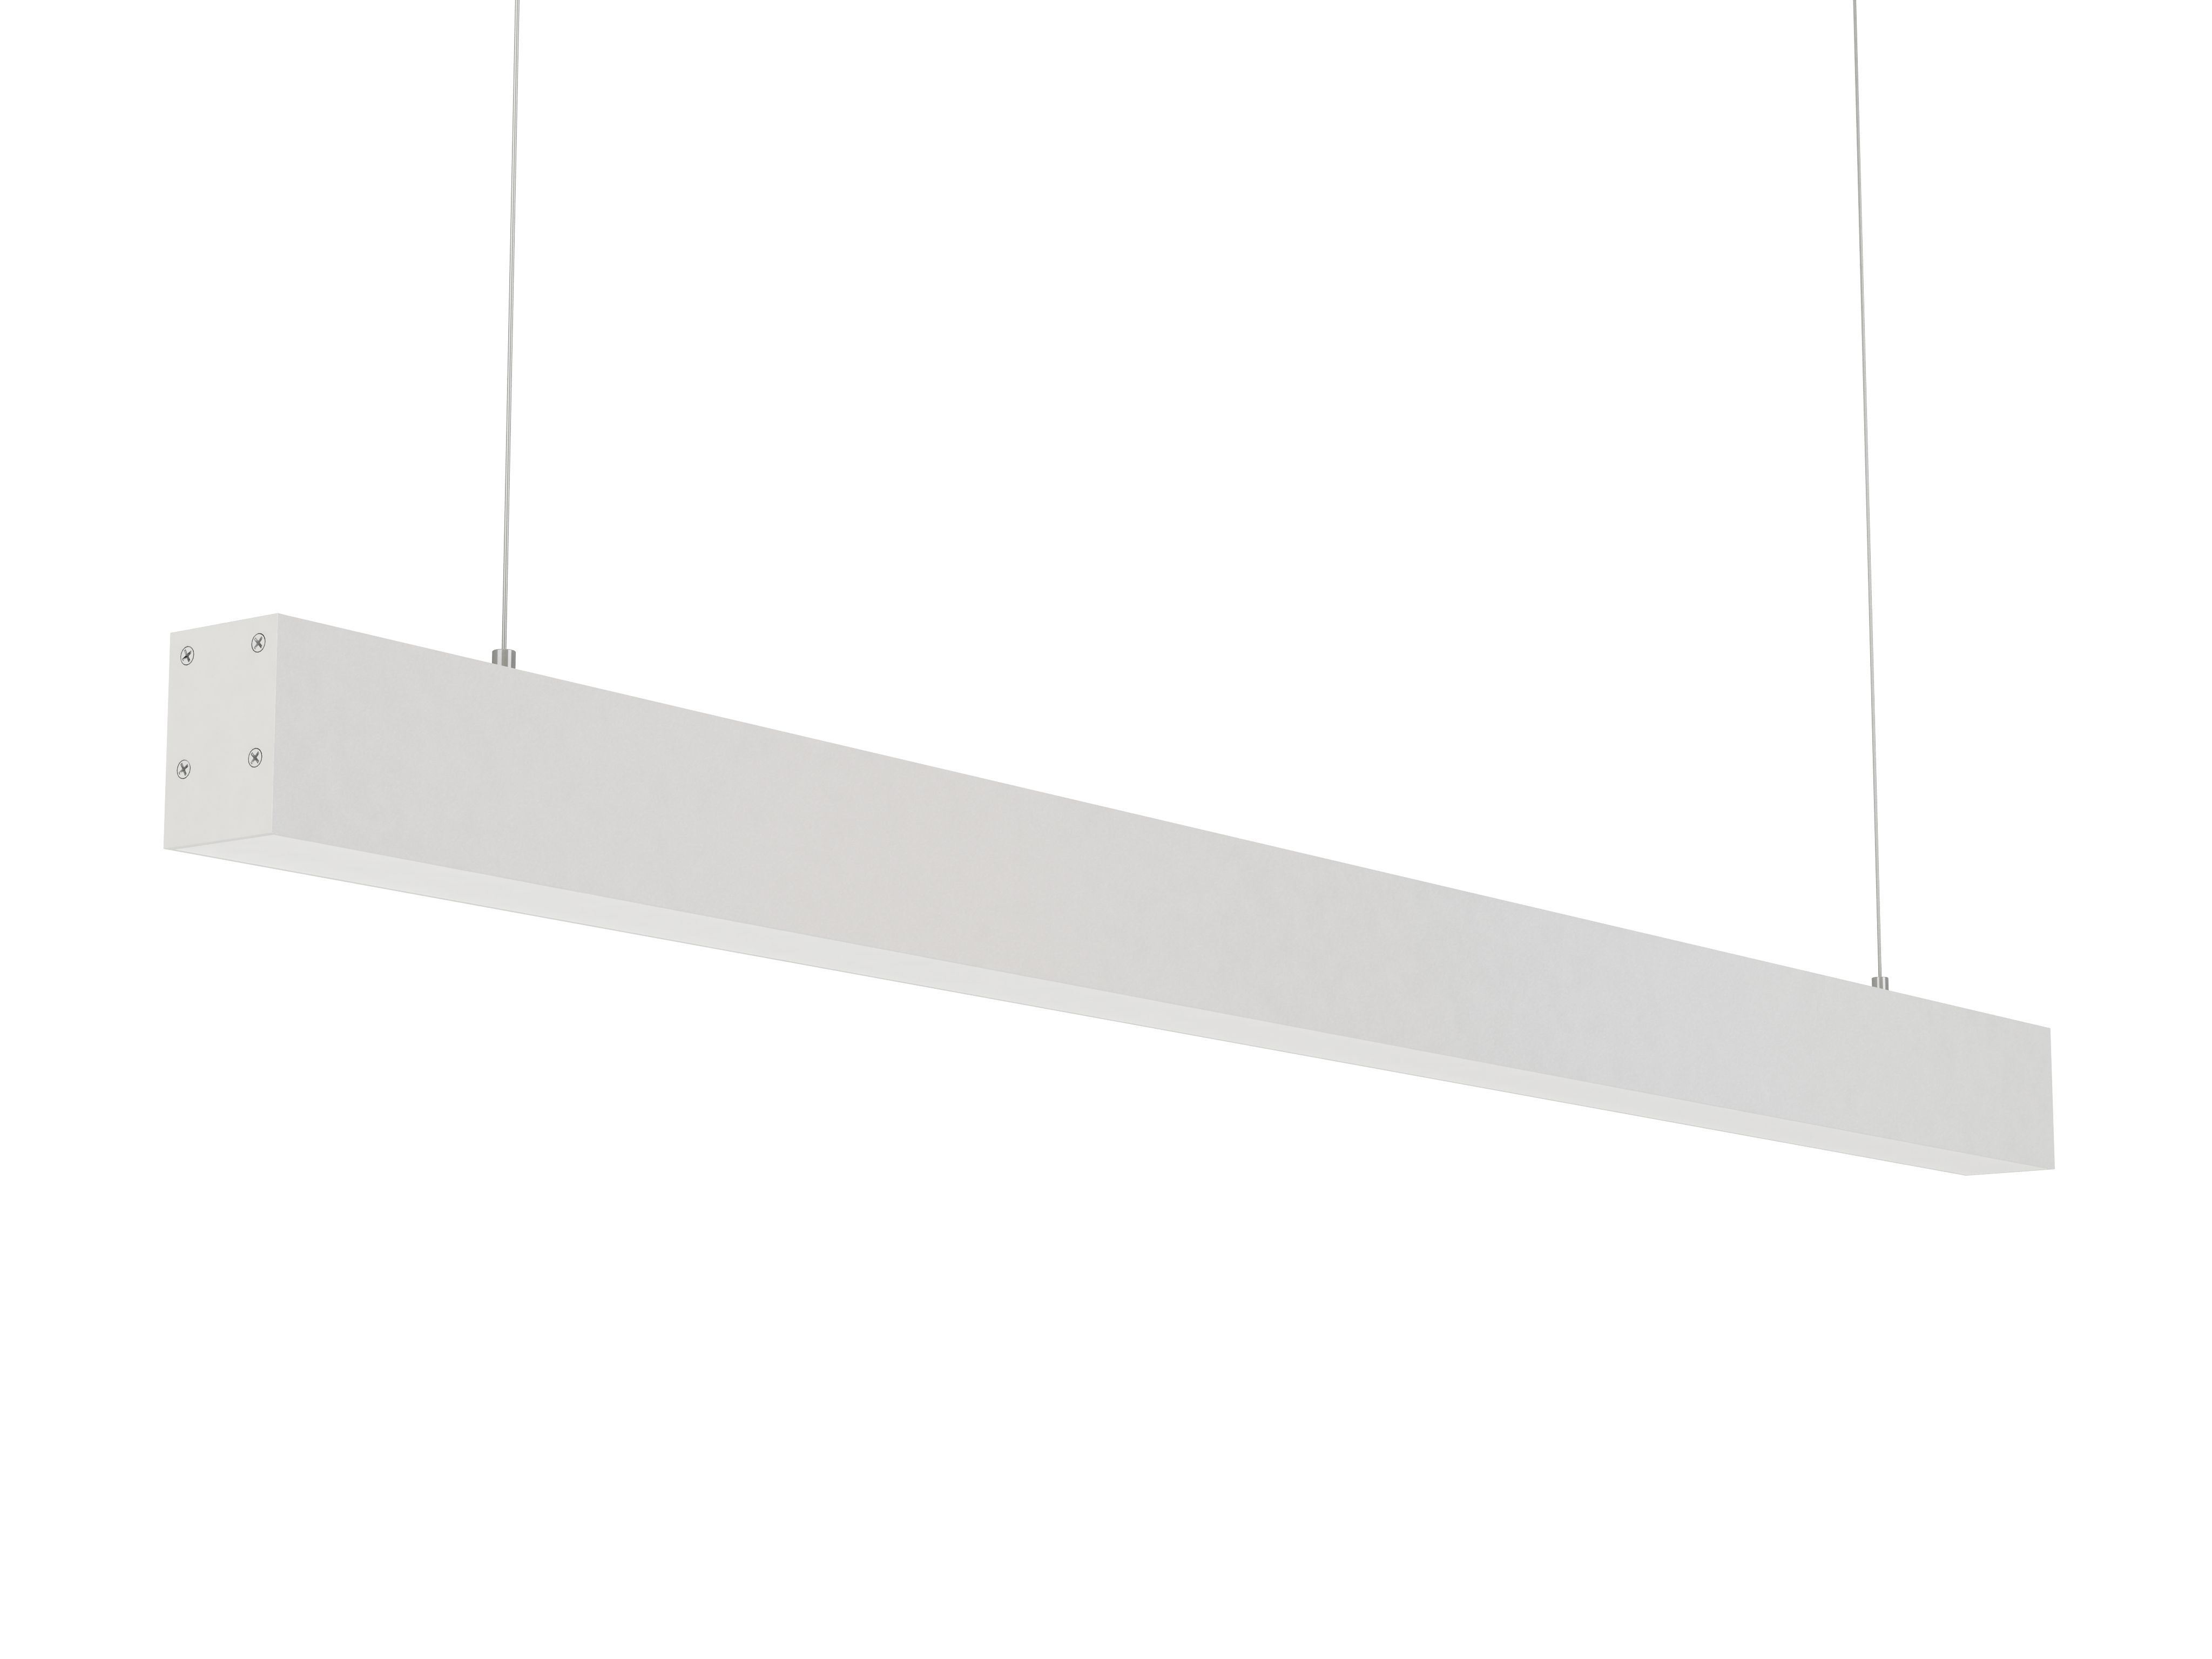 Led Linear Light Stl137 Led Linear Light Fitting Linear Lighting Led Commercial Lighting Led Decor